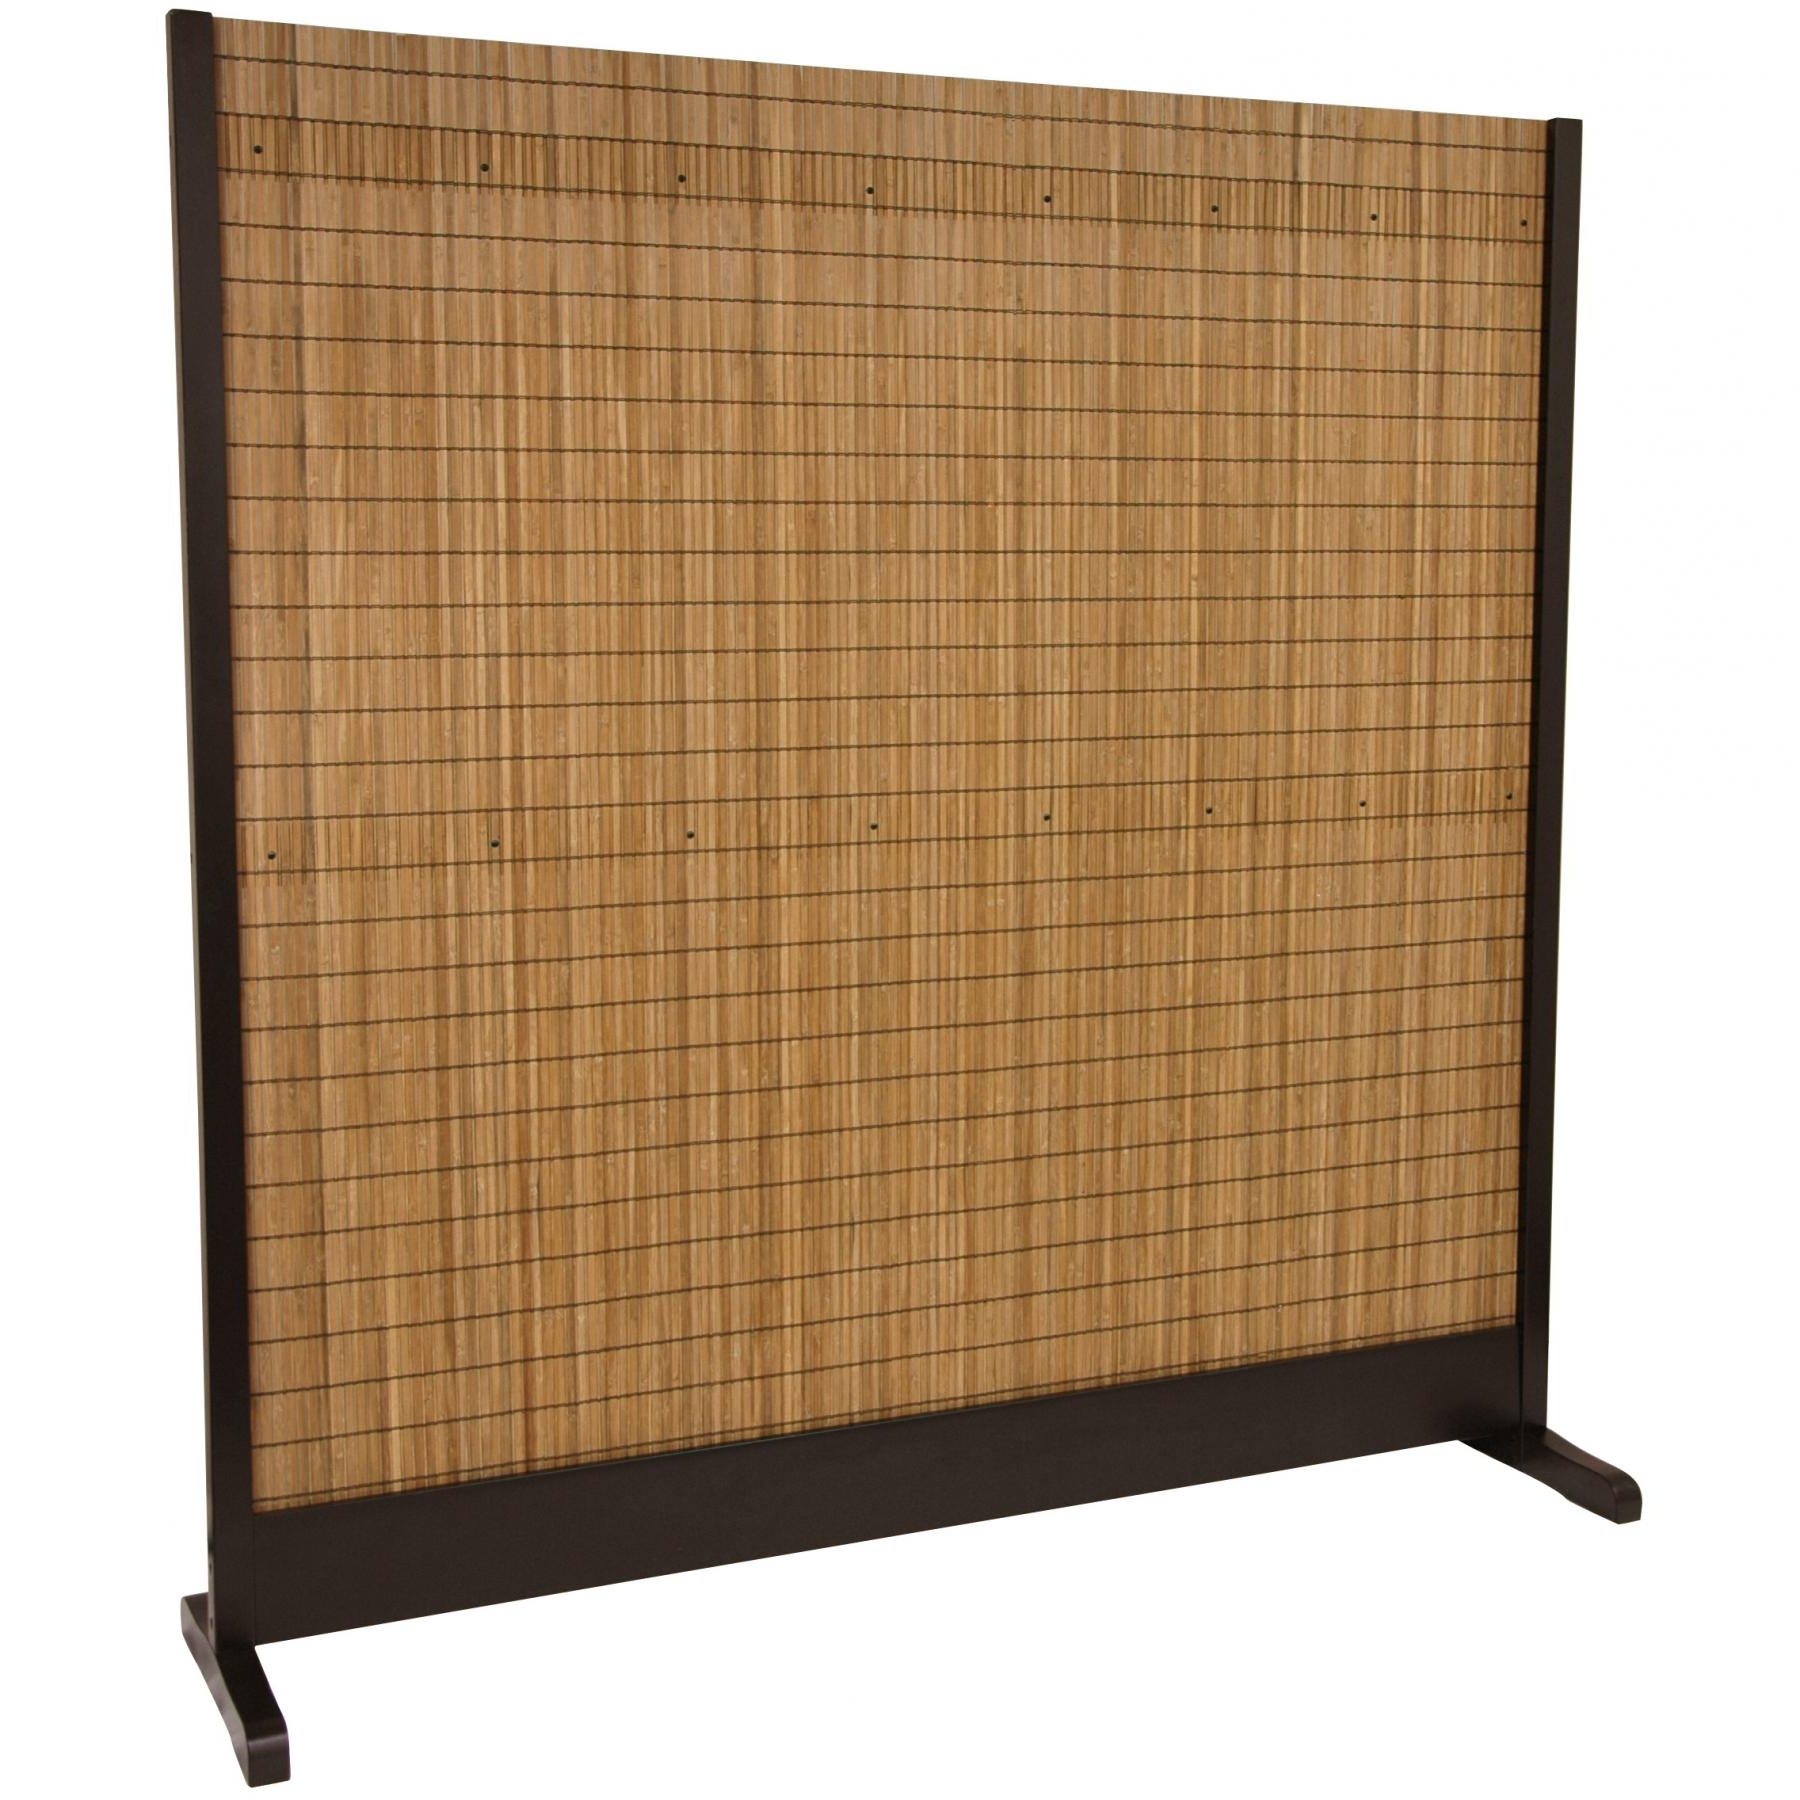 Room Dividers And Privacy Screens – Over 1,500 Unique Styles Available With Room Dividers Screen (View 4 of 12)